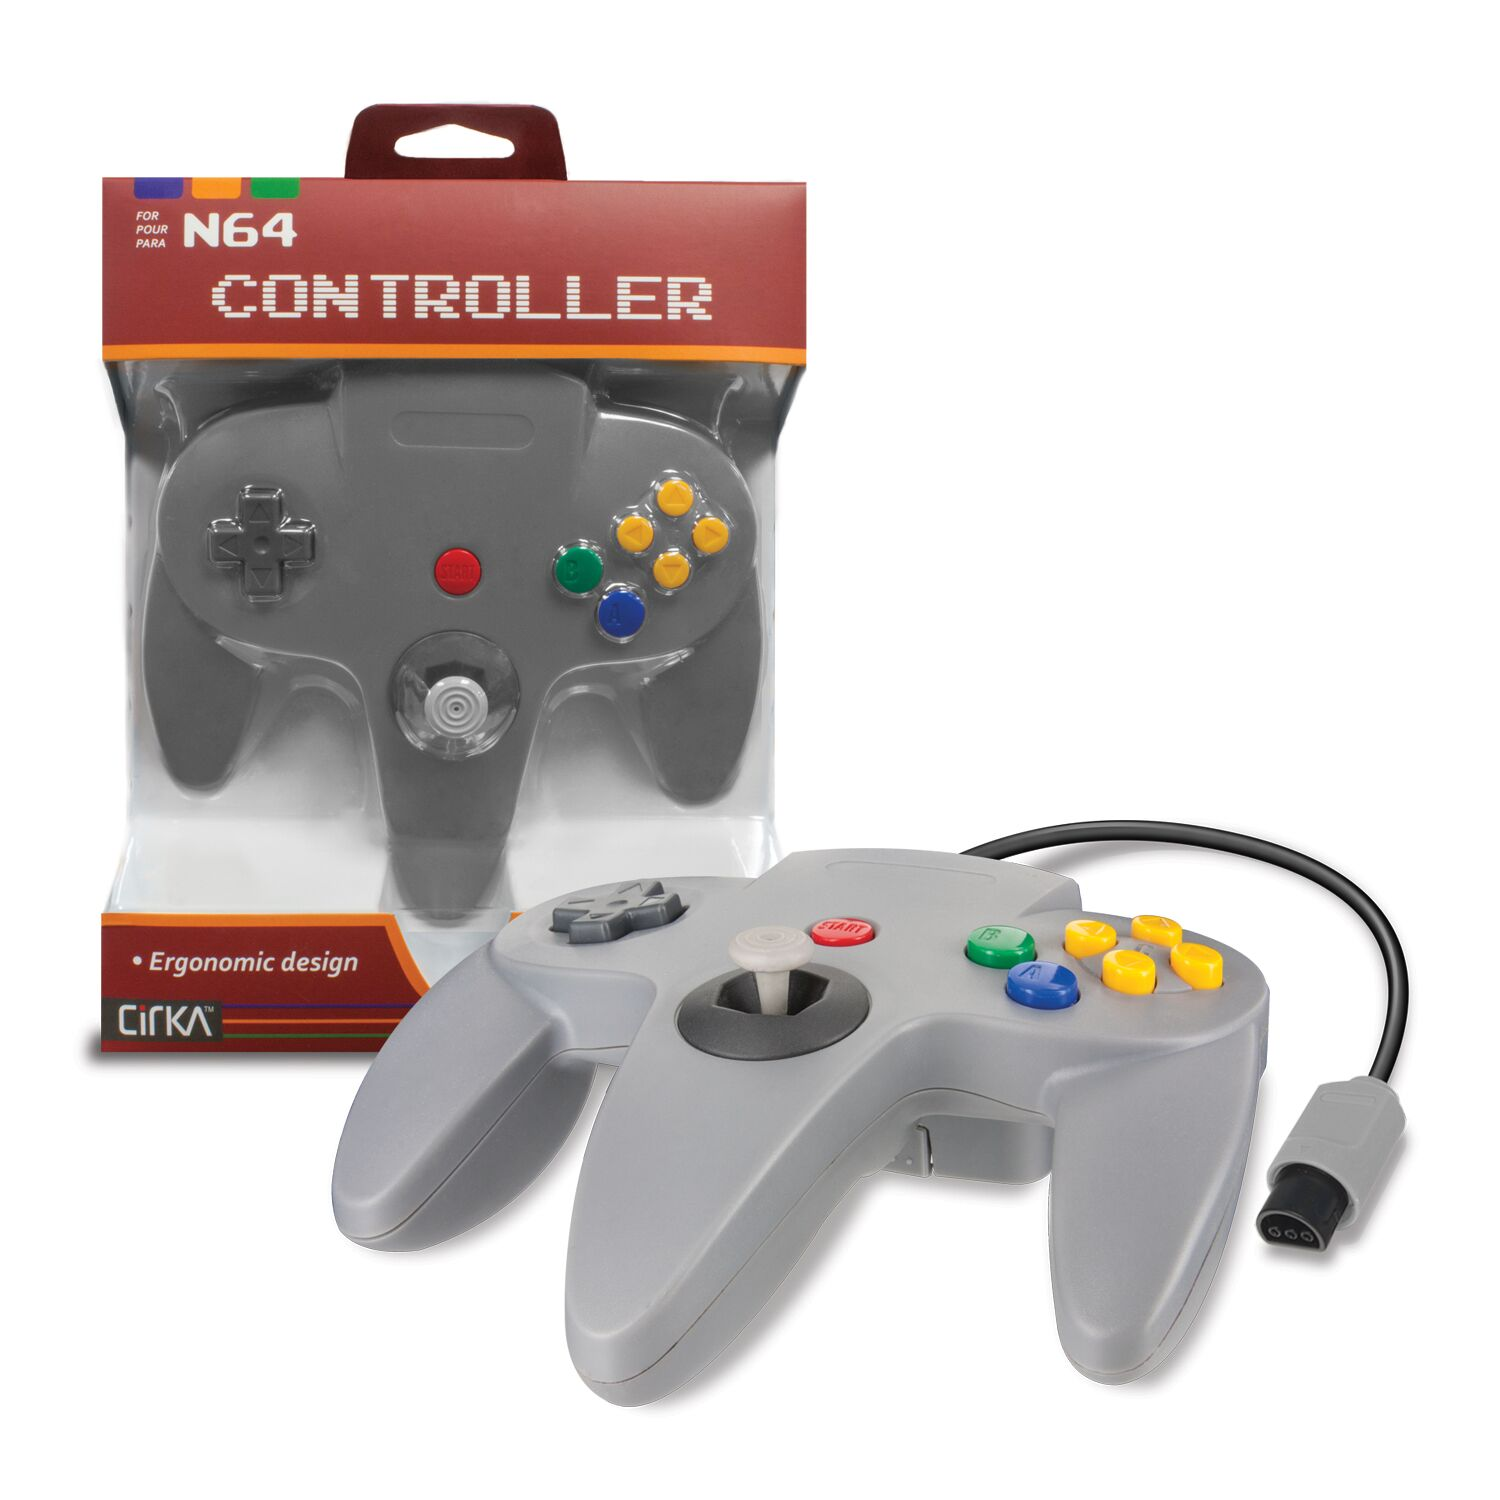 CIRKA M05786-GR GRAY WIRED CONTROLLER FOR N64